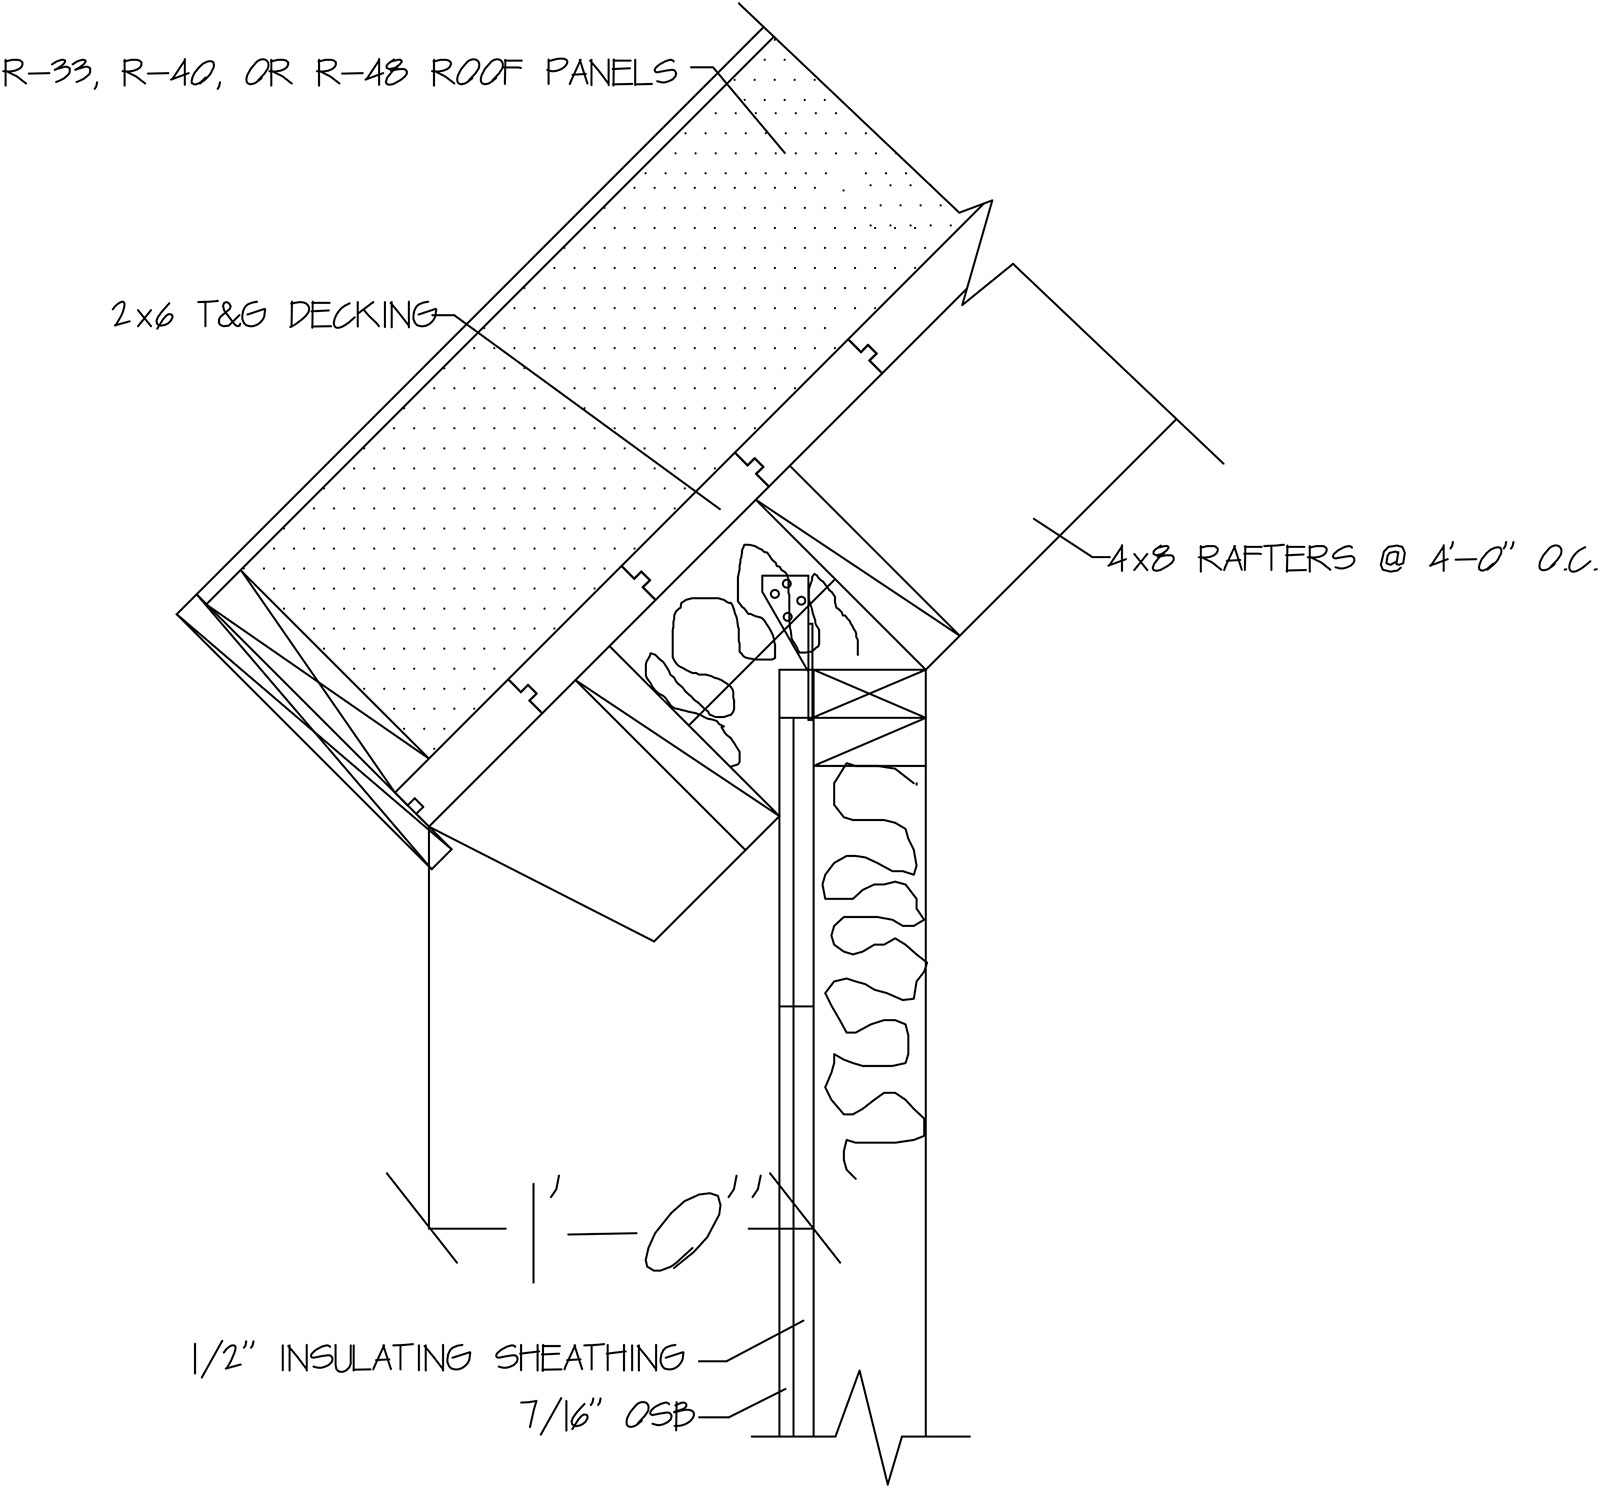 Our Panelized Roof Systems